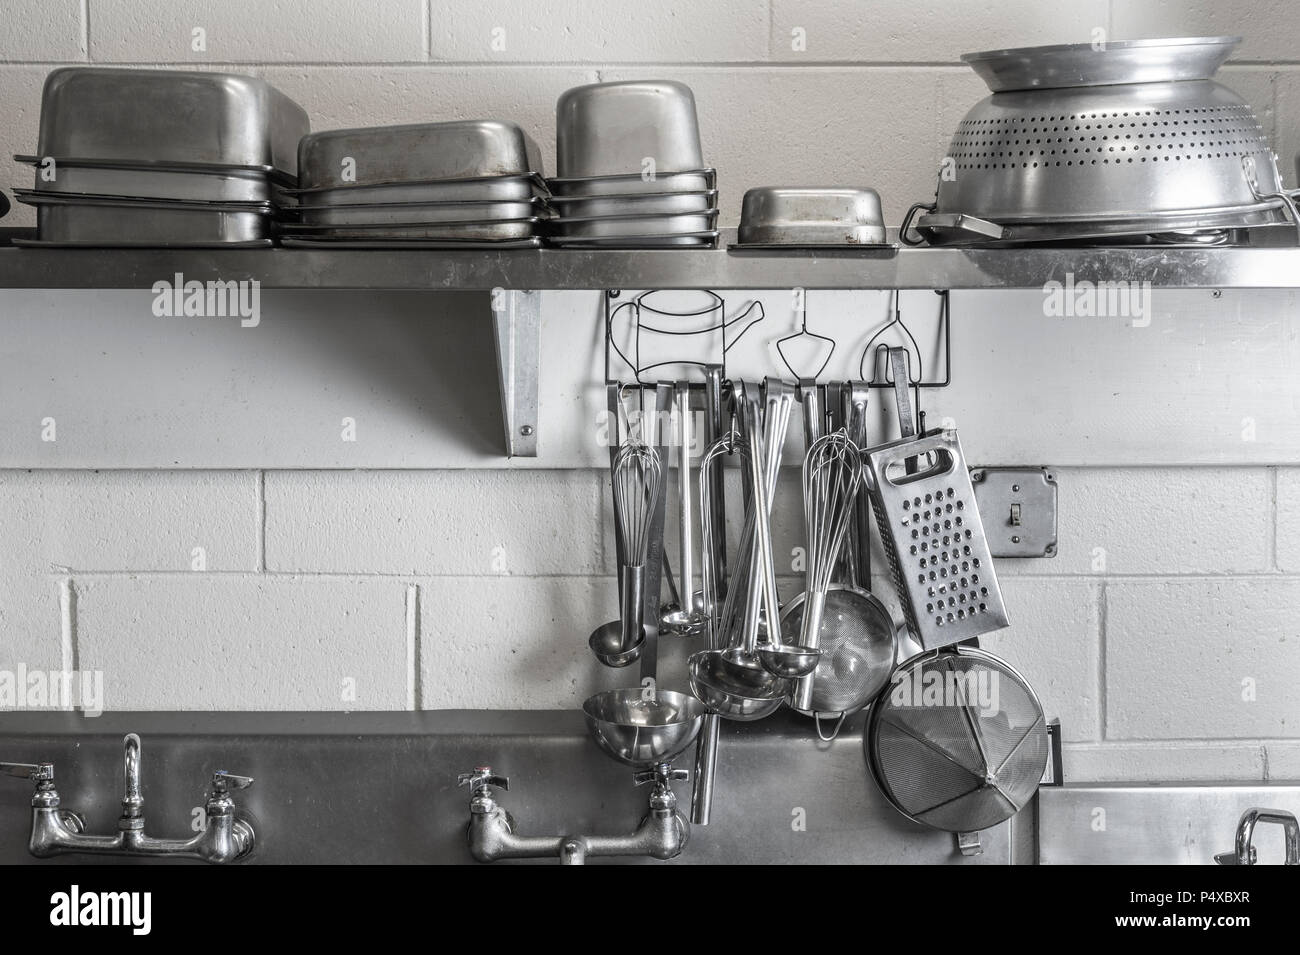 Restaurant Commercial Kitchen Stainless Steel Cooking ...